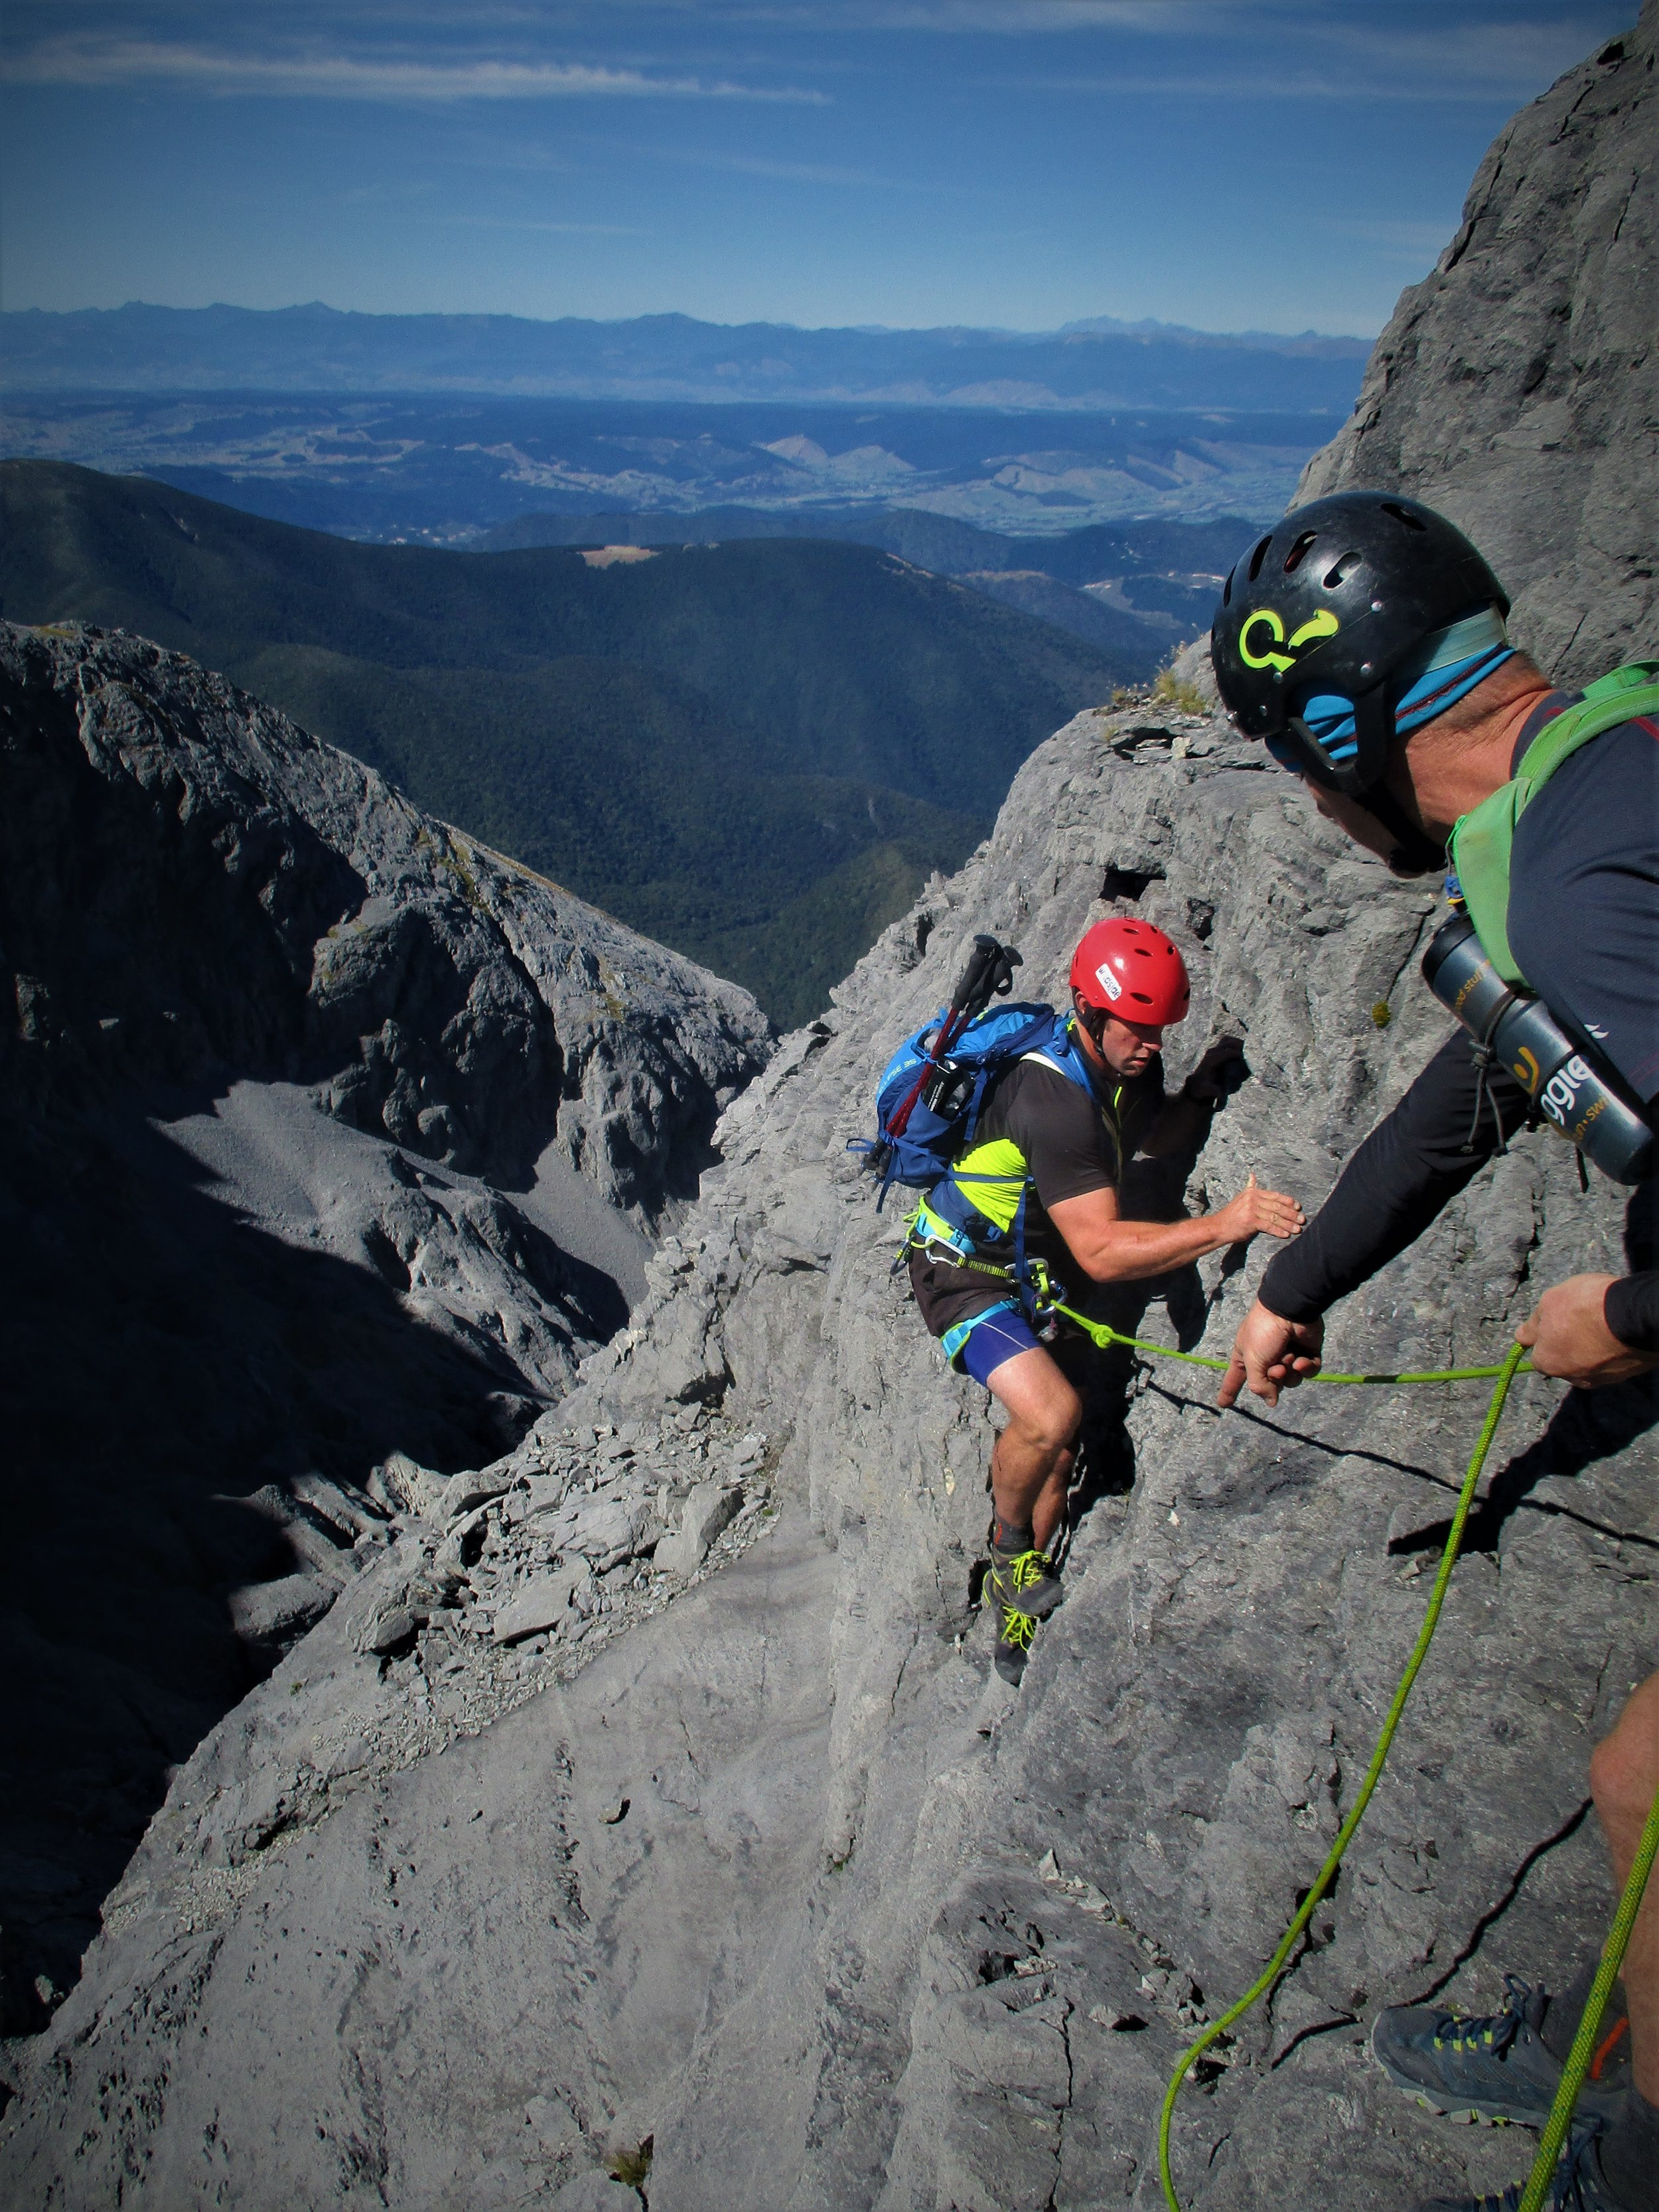 I went with adventure athletes Jake and Brent, 2 very solid performers. Jake has climbed throughout the European alps and is very fluid on the rock - here he points the footholds to Brent on the final part of the South Twin climb !!